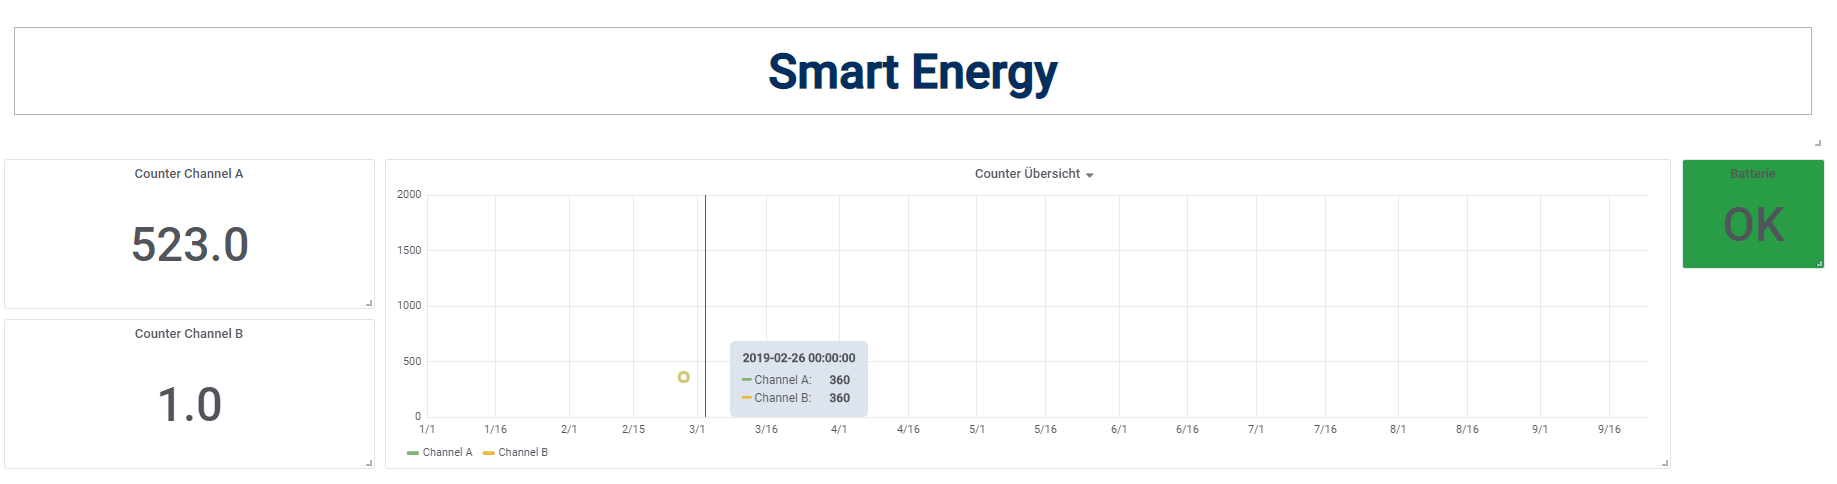 Smart Energy Dashboard